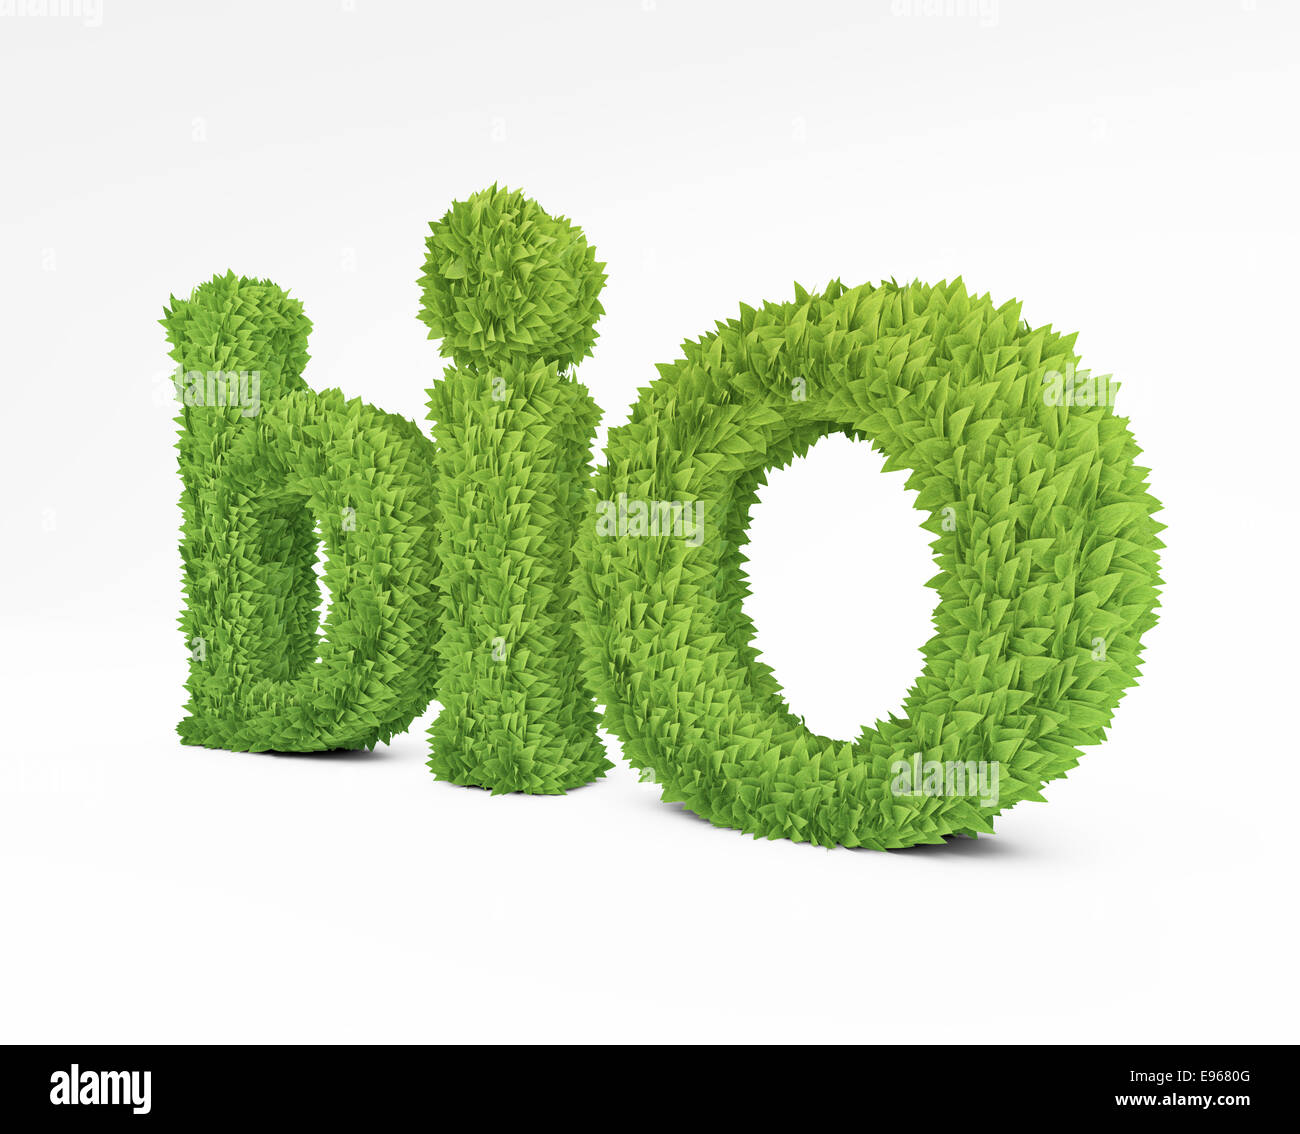 The word 'bio' formed out of green leafs - Stock Image